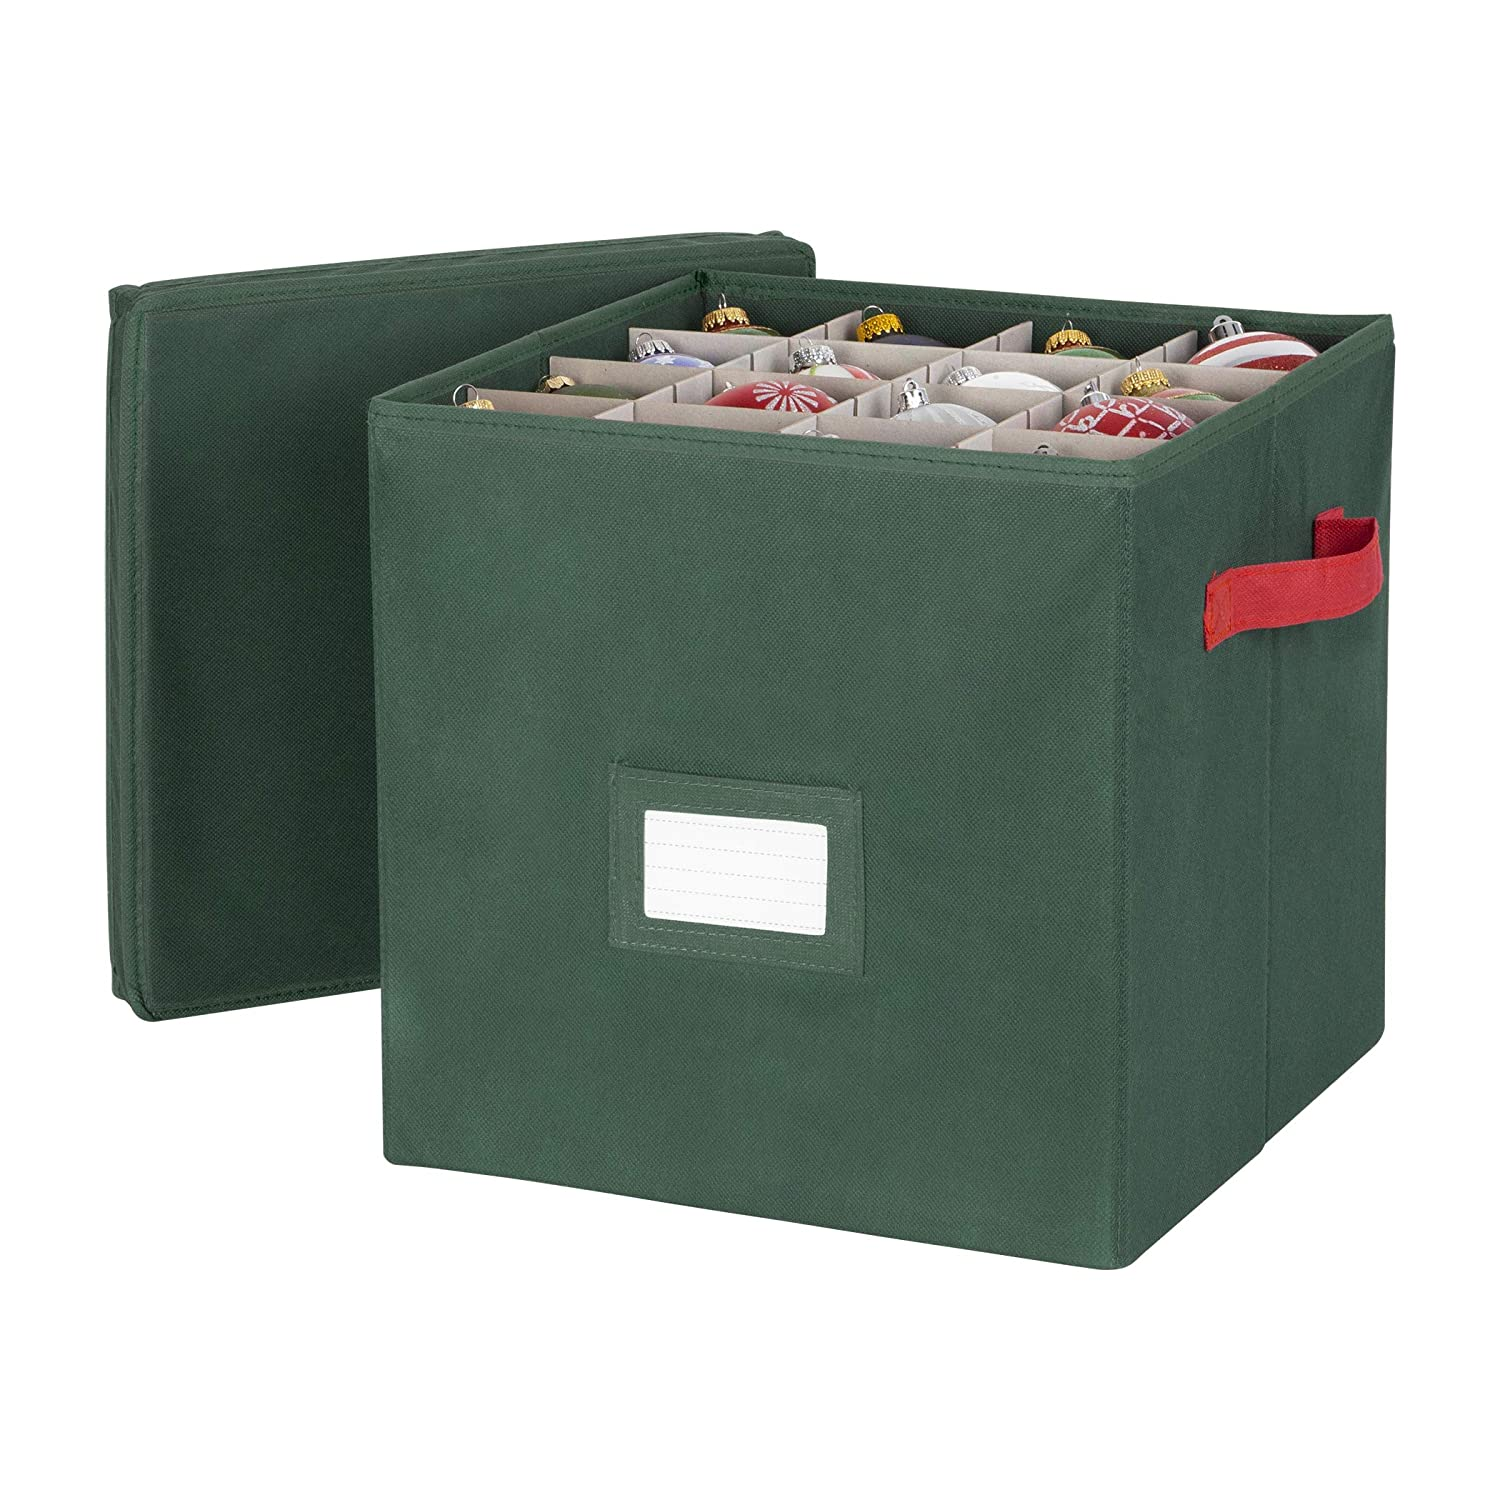 Richards Homewares - Holiday Green 64 Compartment Cube Ornament Organizer RI-64564